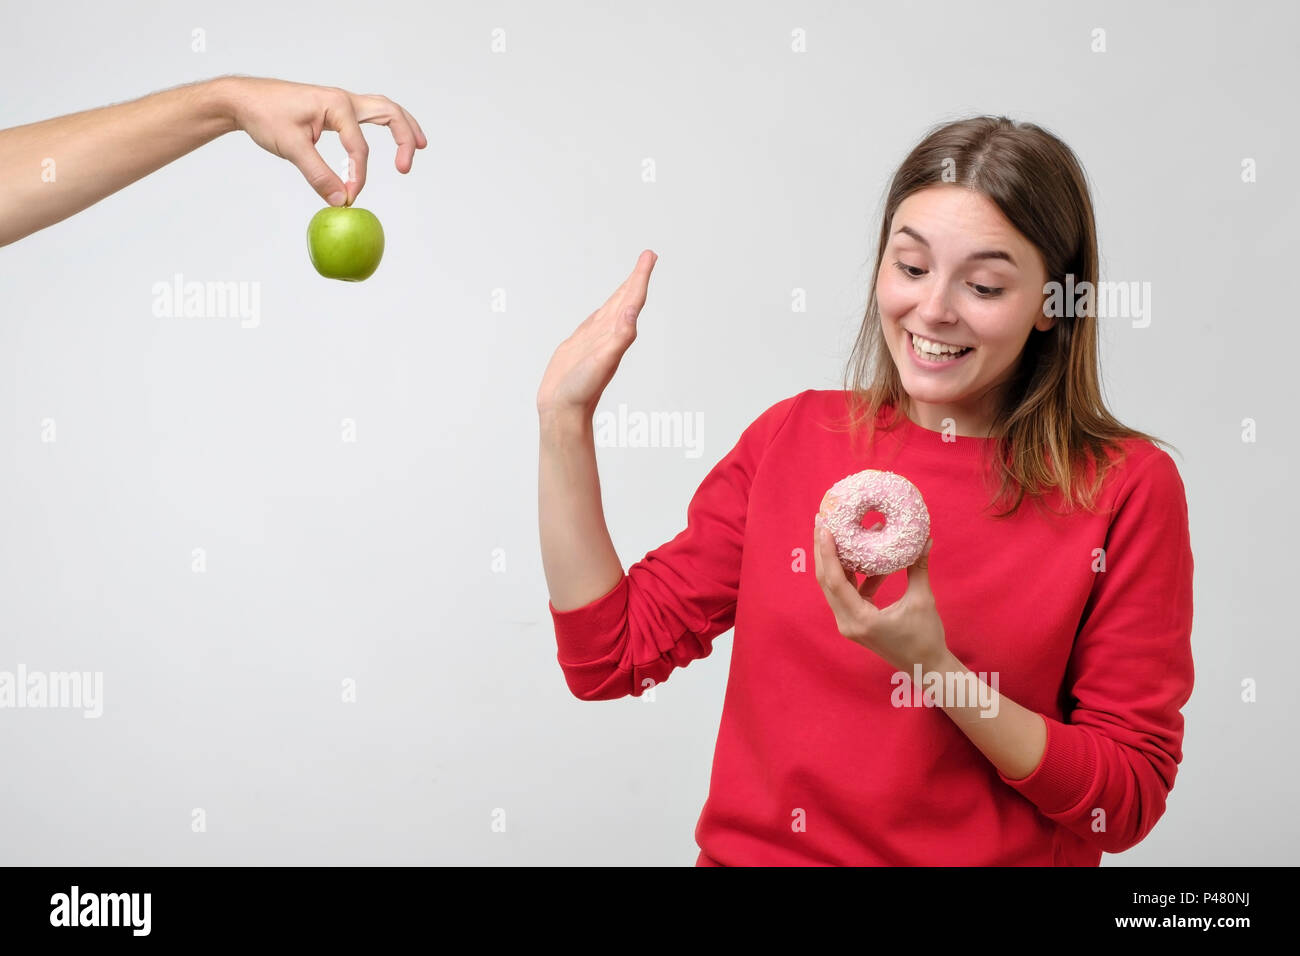 Healthy food and diet concept. Beautiful young woman choosing between fruits and sweets. She prefer a pink donut instead of green apple Stock Photo